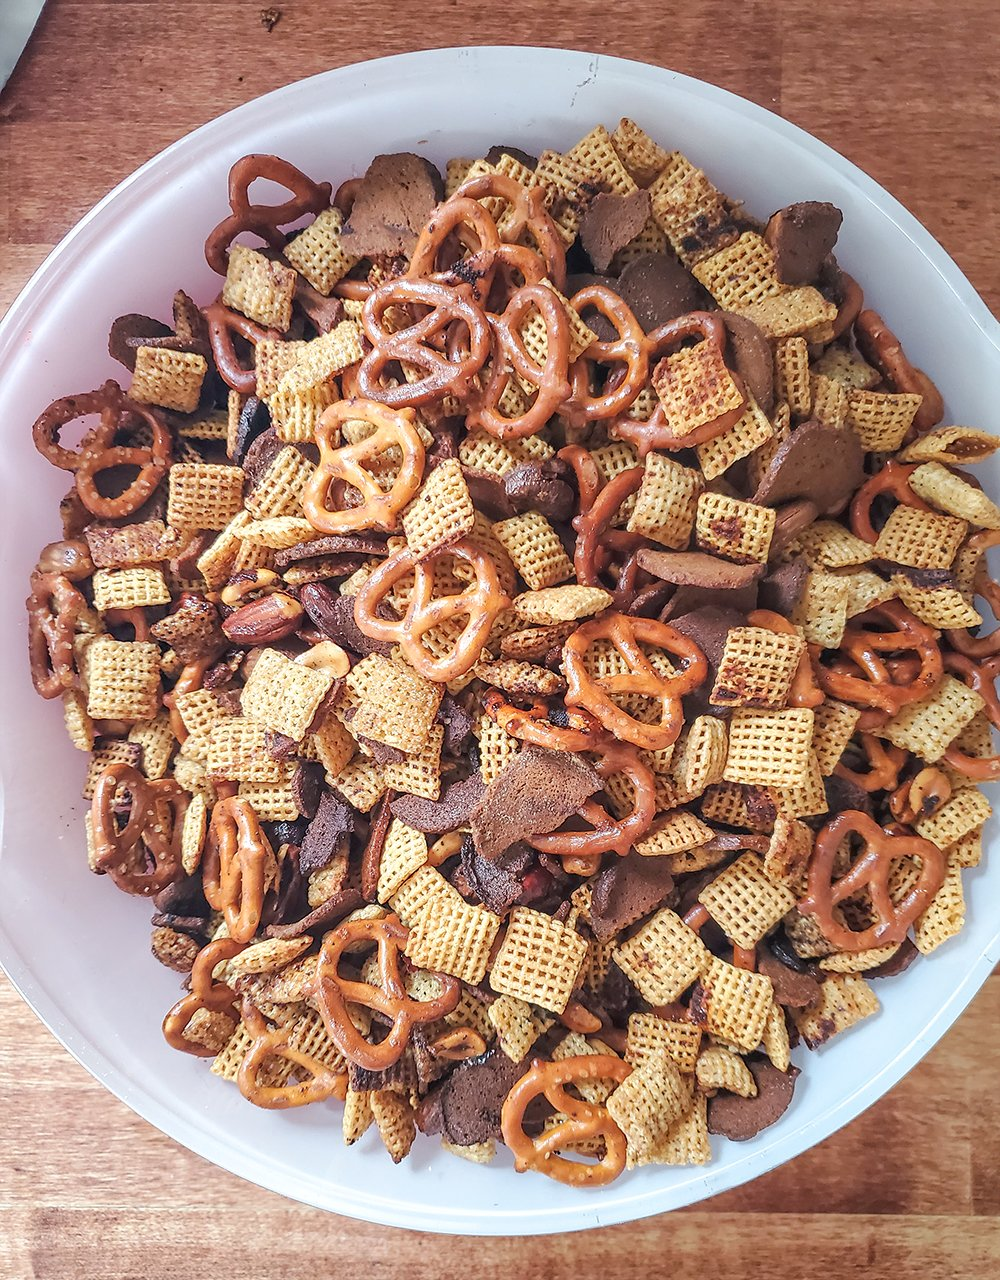 Homemade chex mix with Chex cereal, rye crackers, pretzels, mixed nuts, butter, and seasonings.